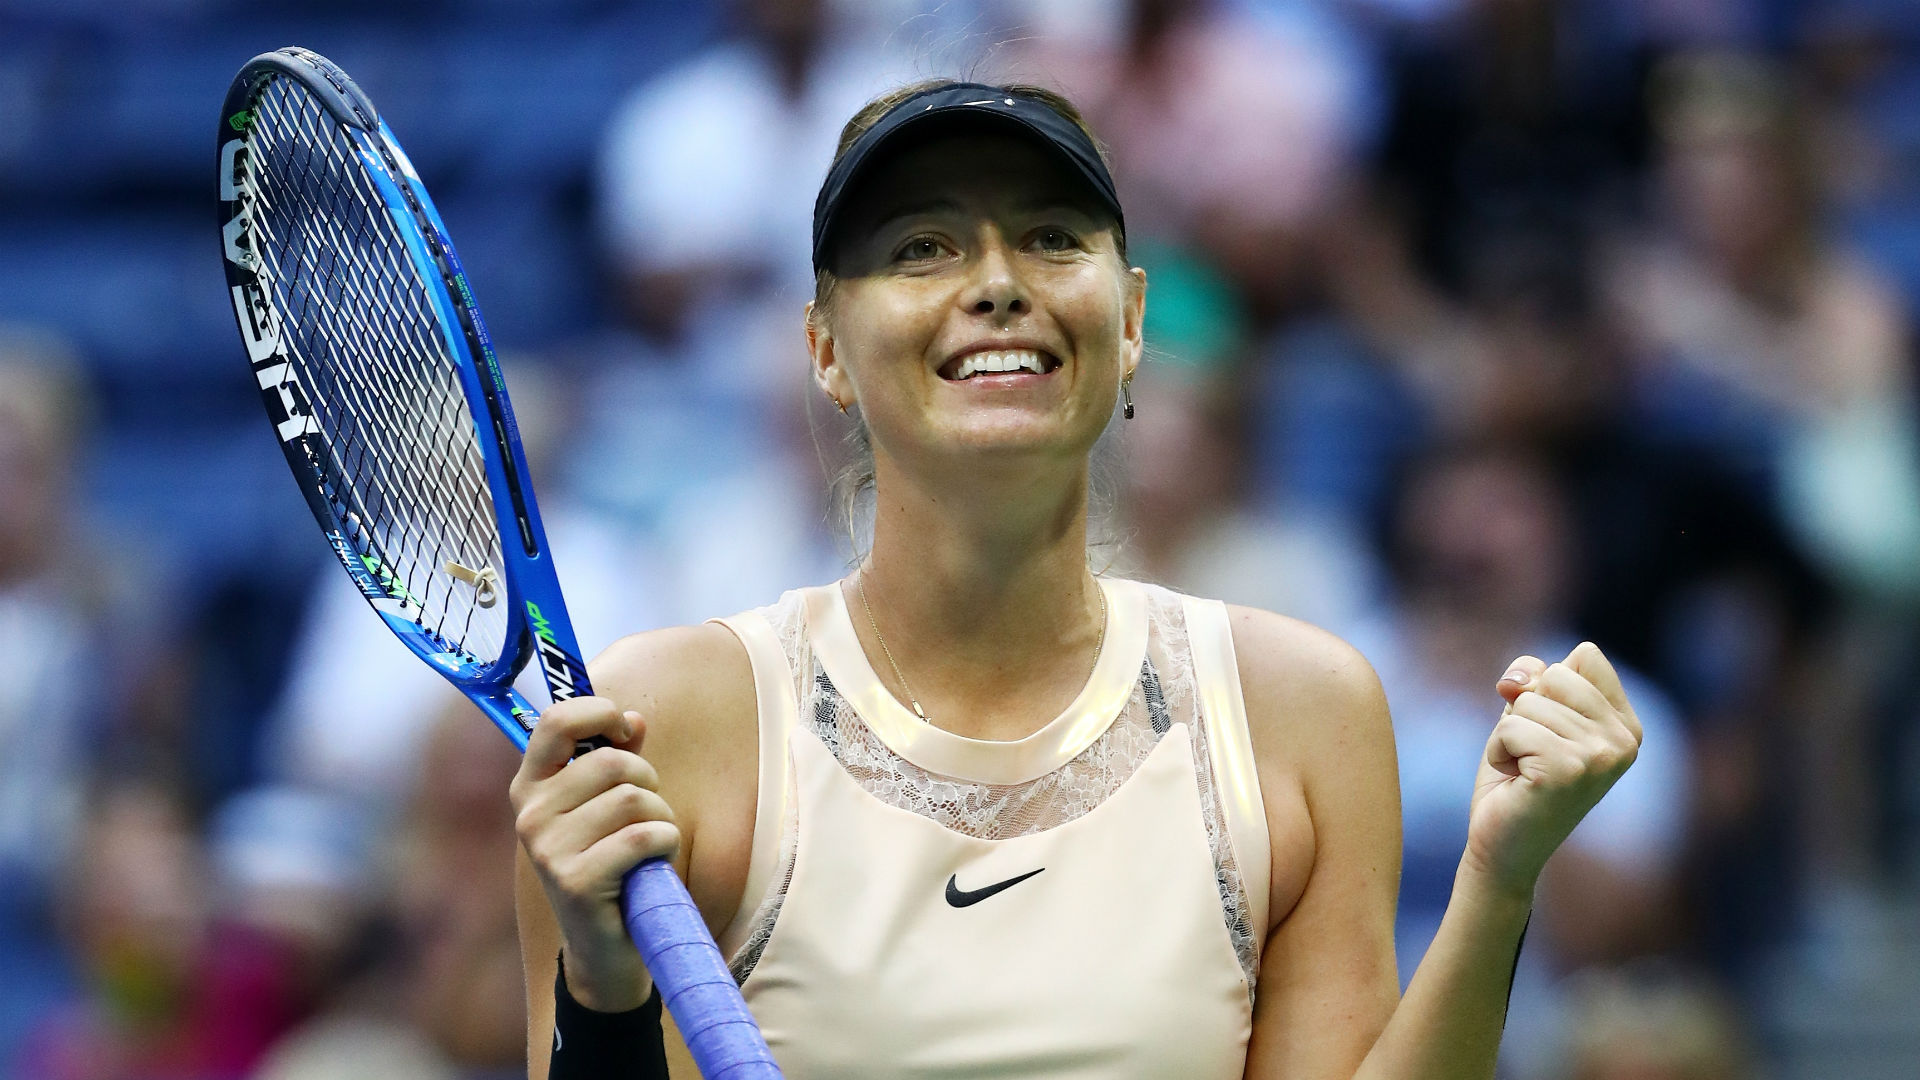 Maria Sharapova claims first title since doping ban